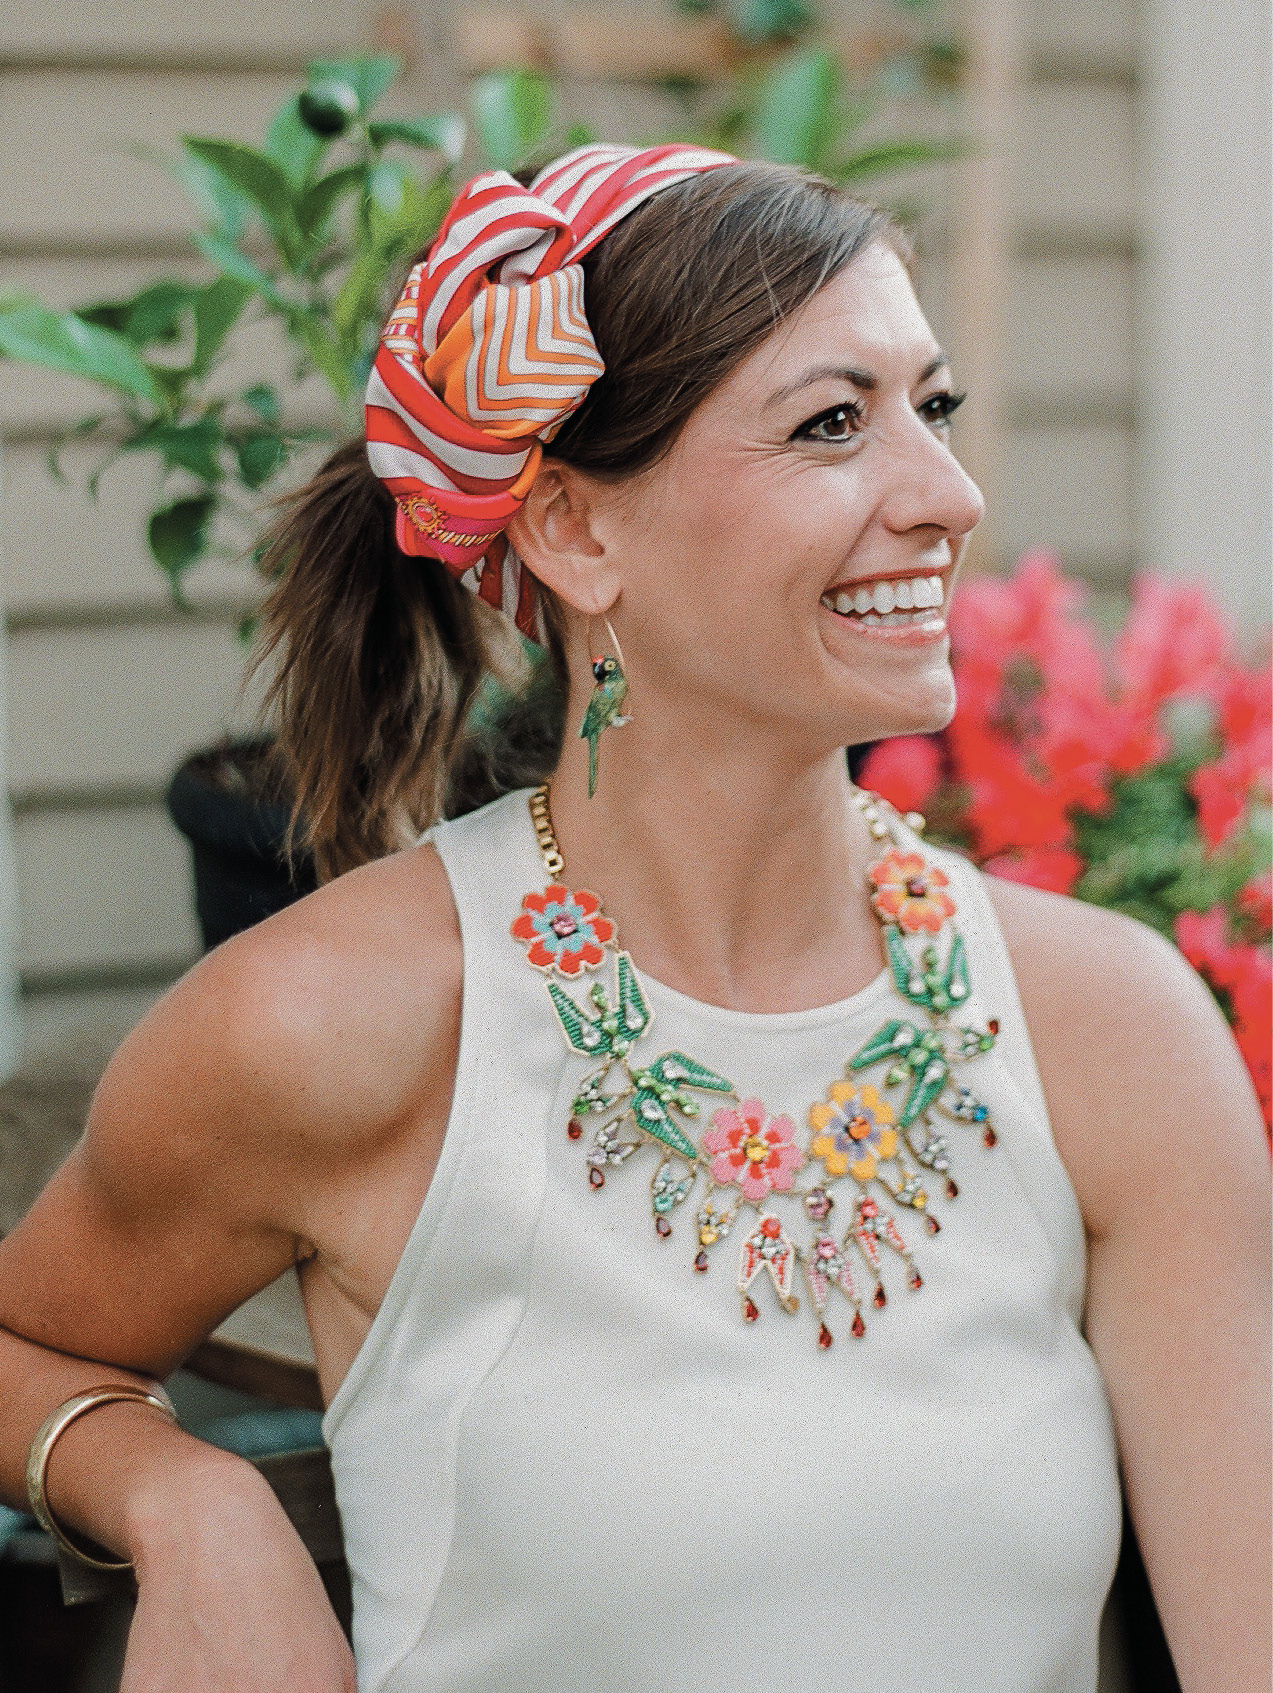 Guests were asked to wear all white with colorful accessories; check out Tenny Morrison's fun ensemble.